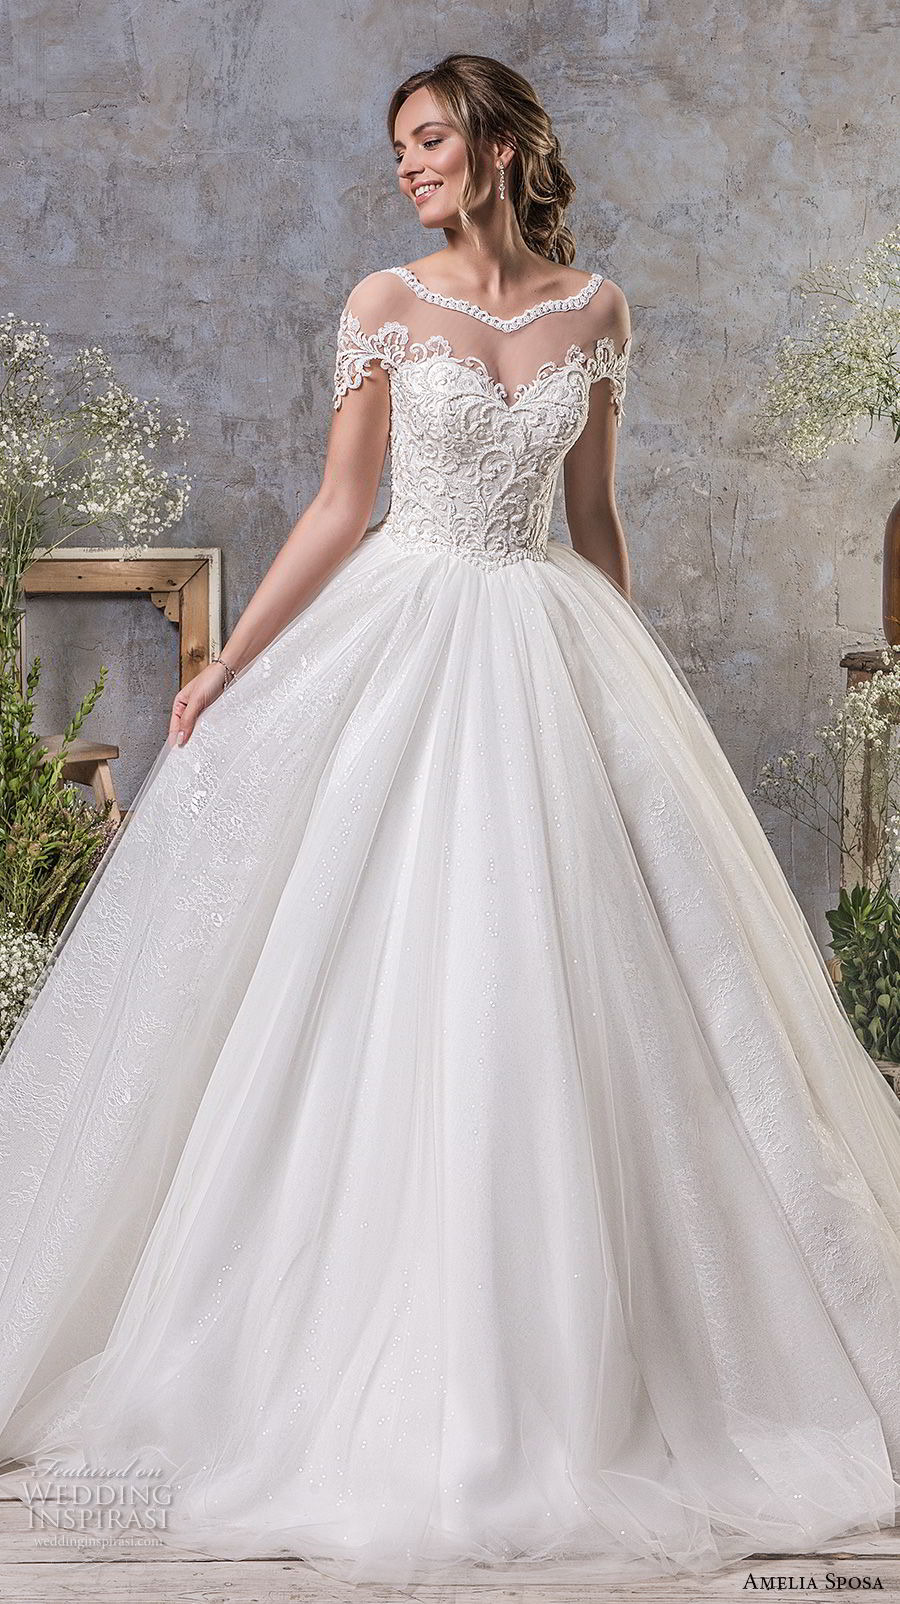 amelia sposa fall 2018 bridal short sleeves illusion bateau sweeetheart neckline heavily embellished bodice ball gown a line wedding dress open v back chapel train (14) mv